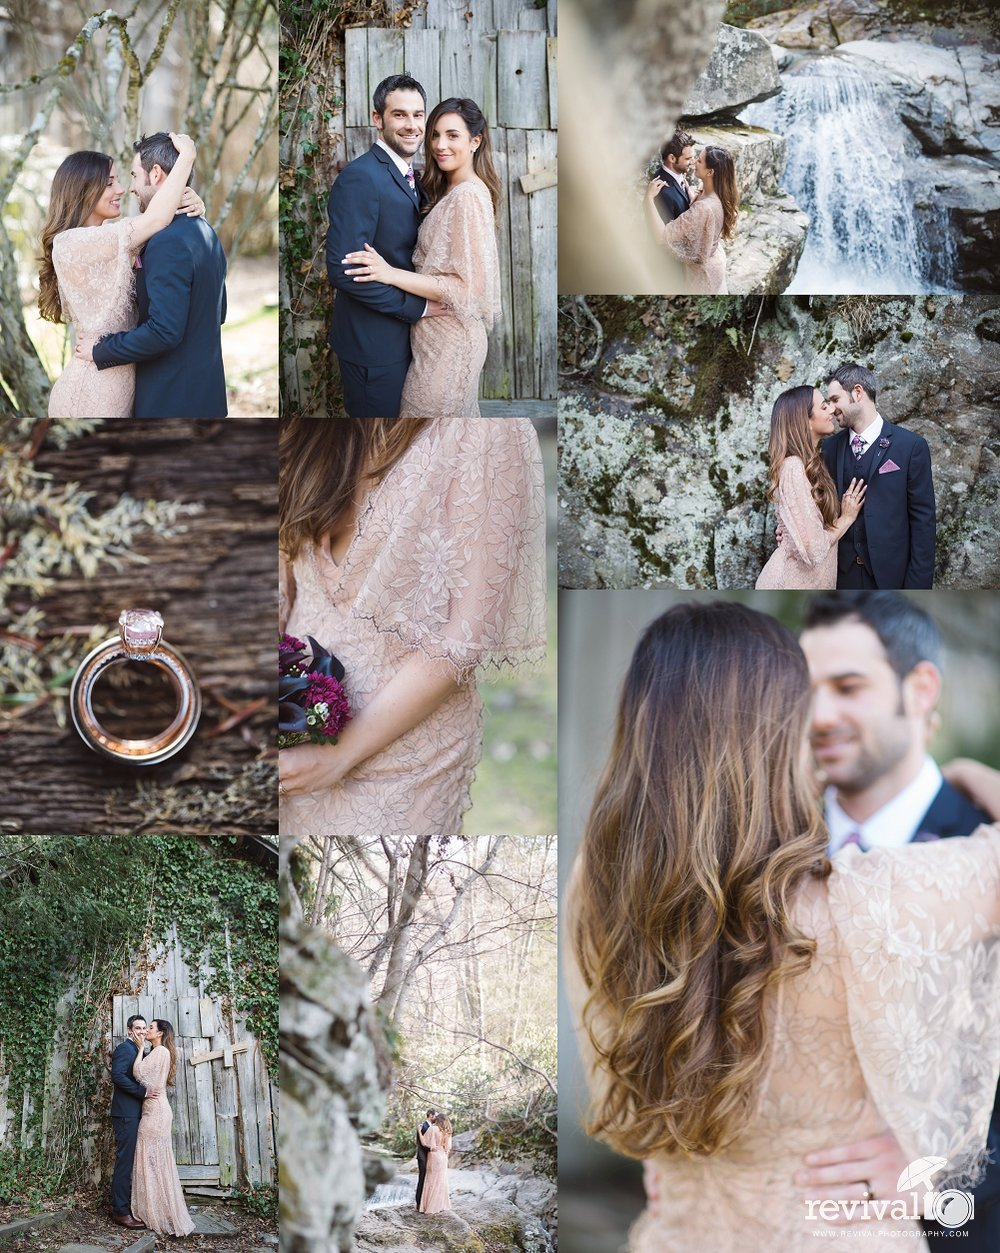 Whitney + Matthew's Mast Farm Inn Elopement (VIDEO + BEHIND THE SCENES VLOG!) Photos and Video by Revival Photography www.revivalphotography.com